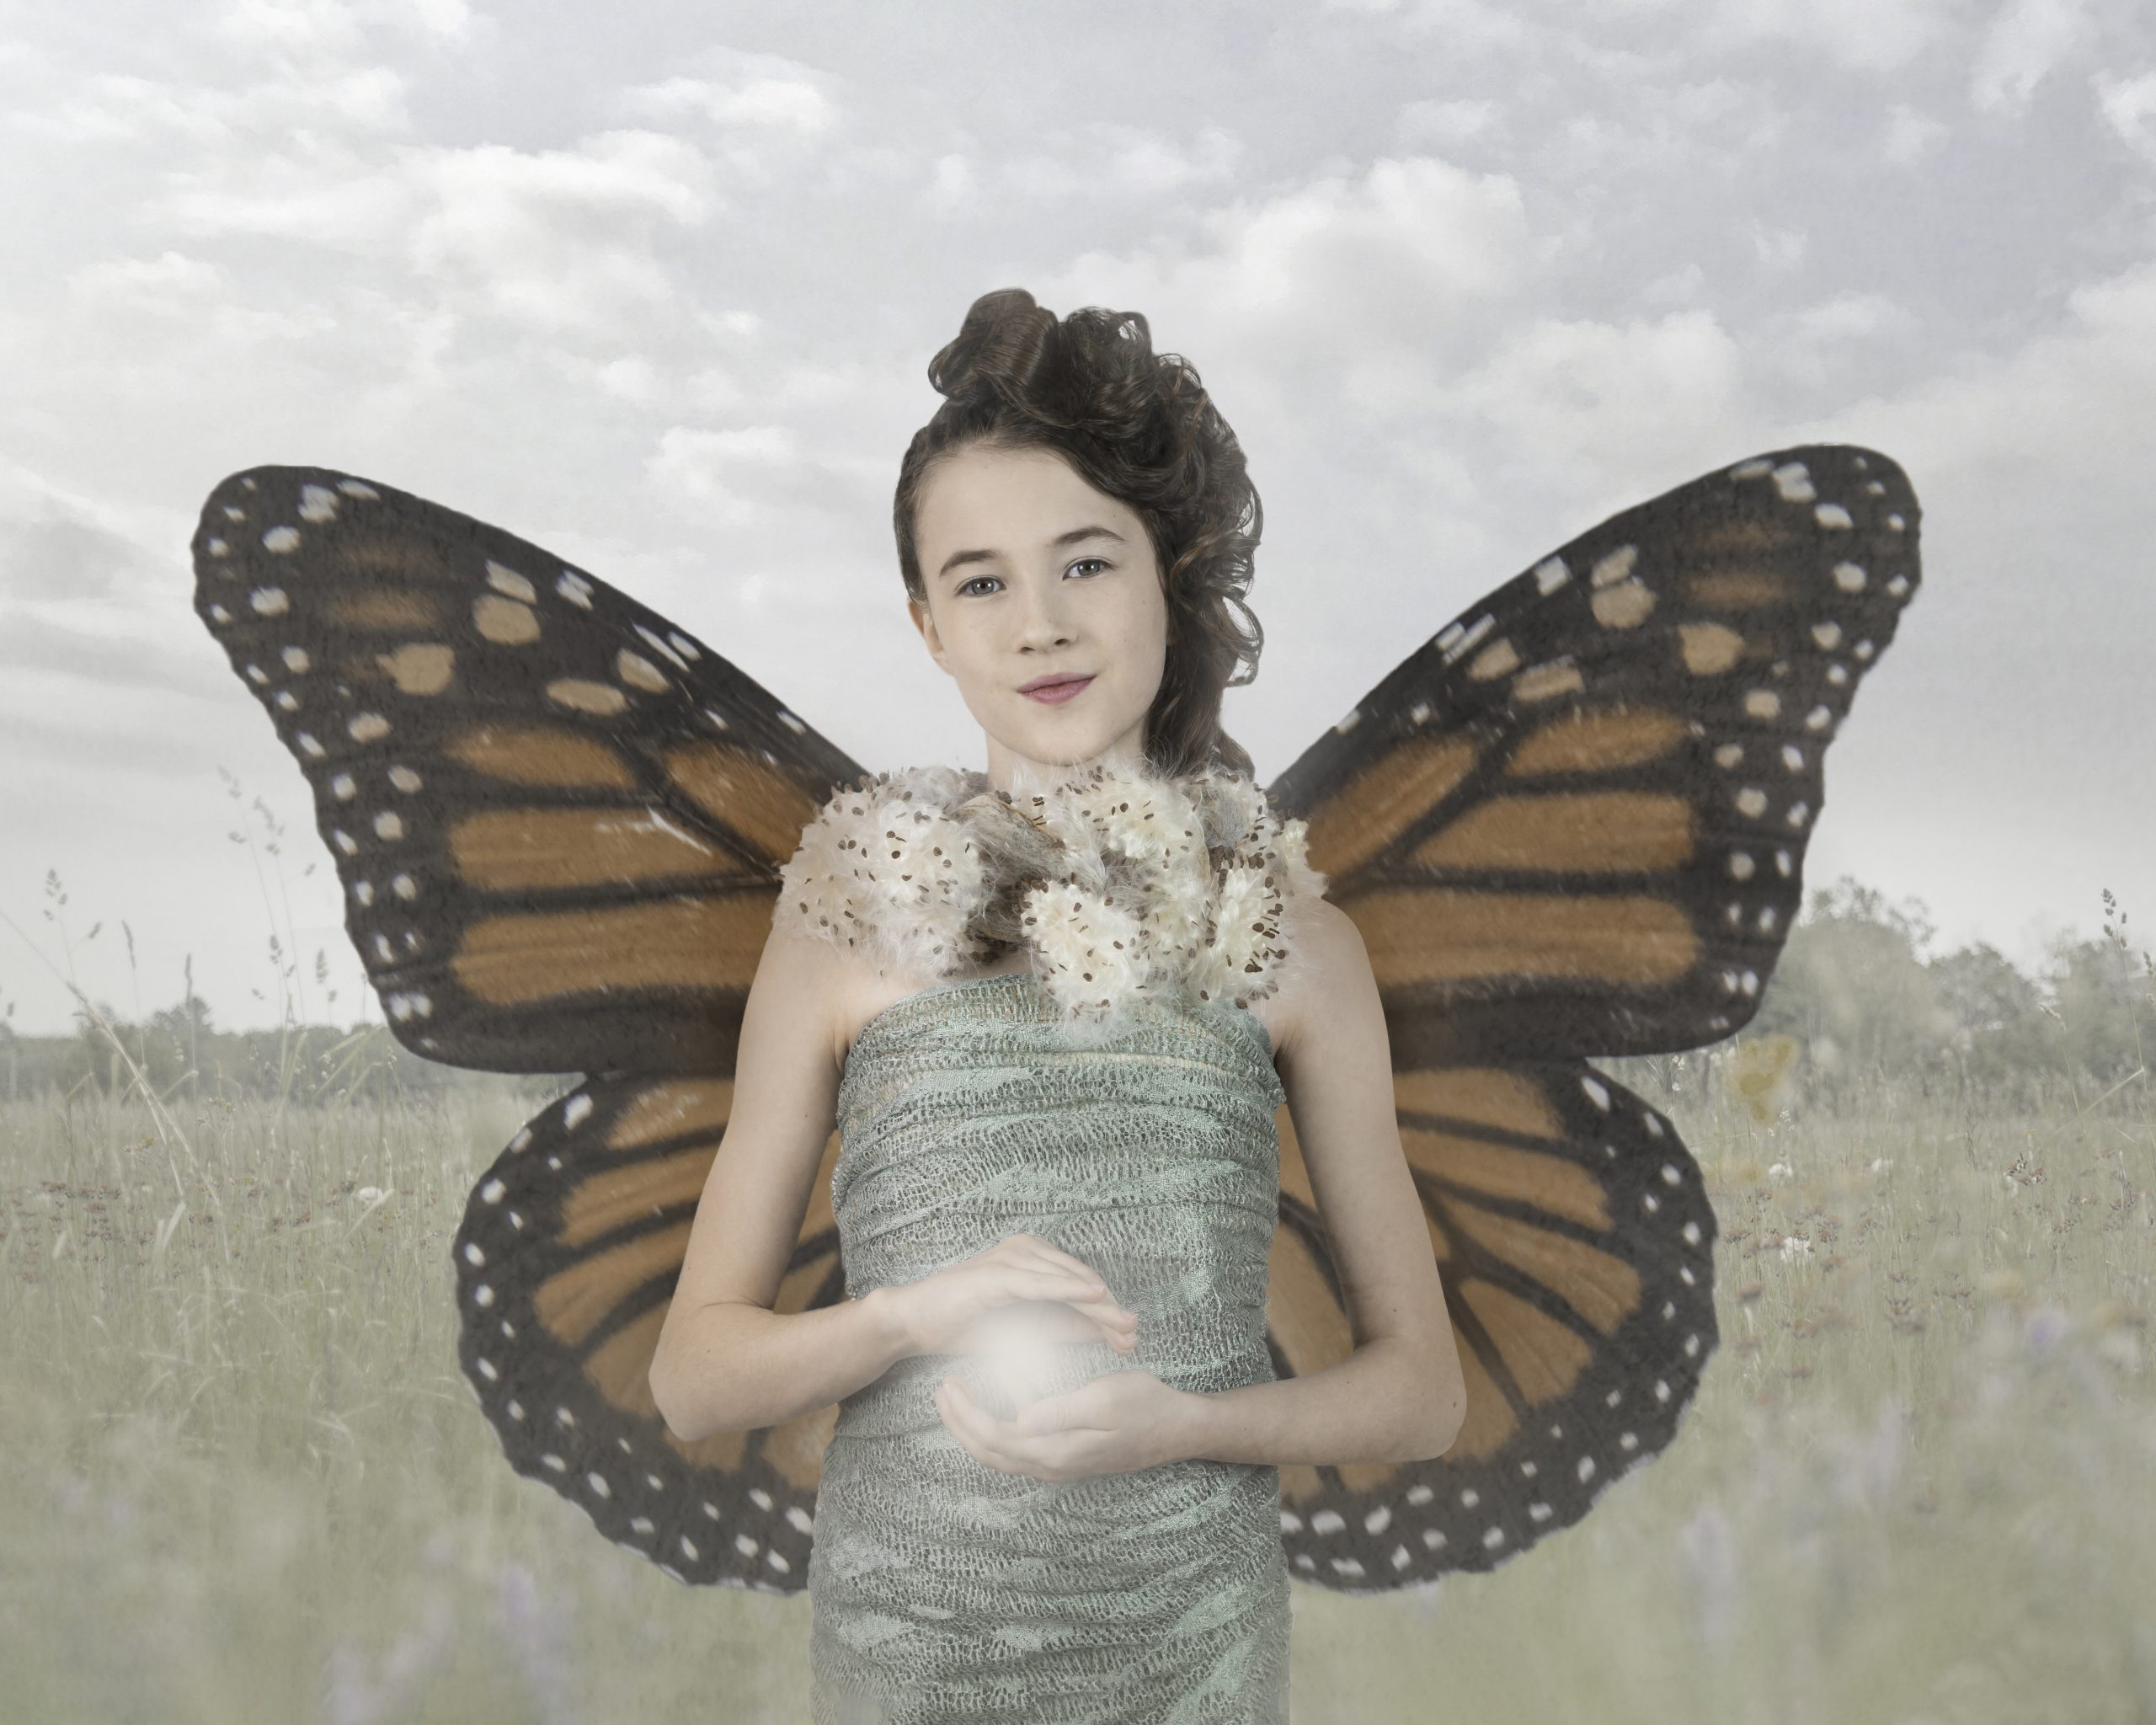 Before and after slider showing Texture overlay added to a portrait of a girl with monarch butterfly wings